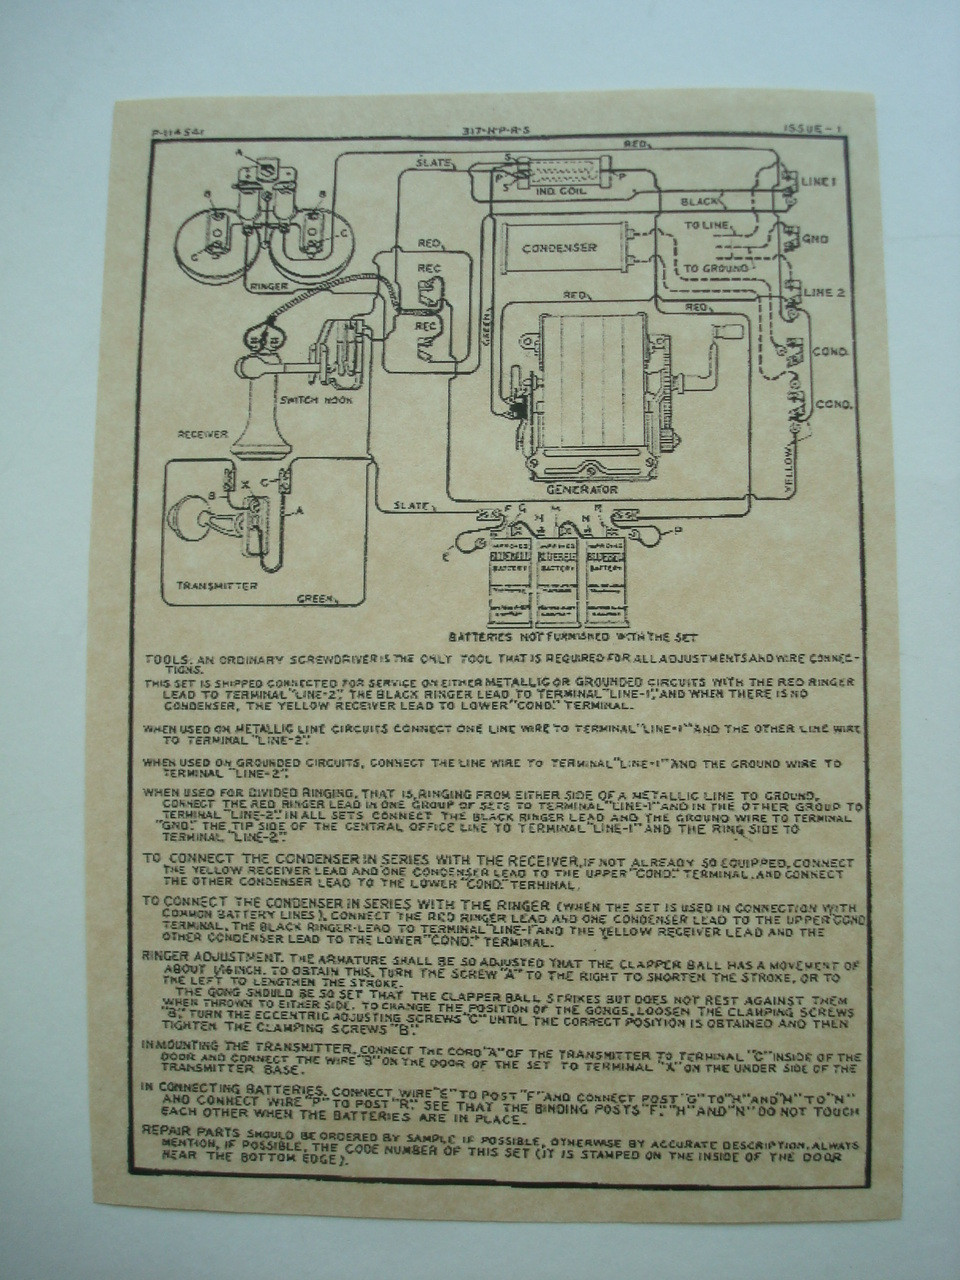 317 wood wall phone diagram glue on old phone shop store Antique Wall Phone Wiring Diagram how to rewire a vintage phone so it